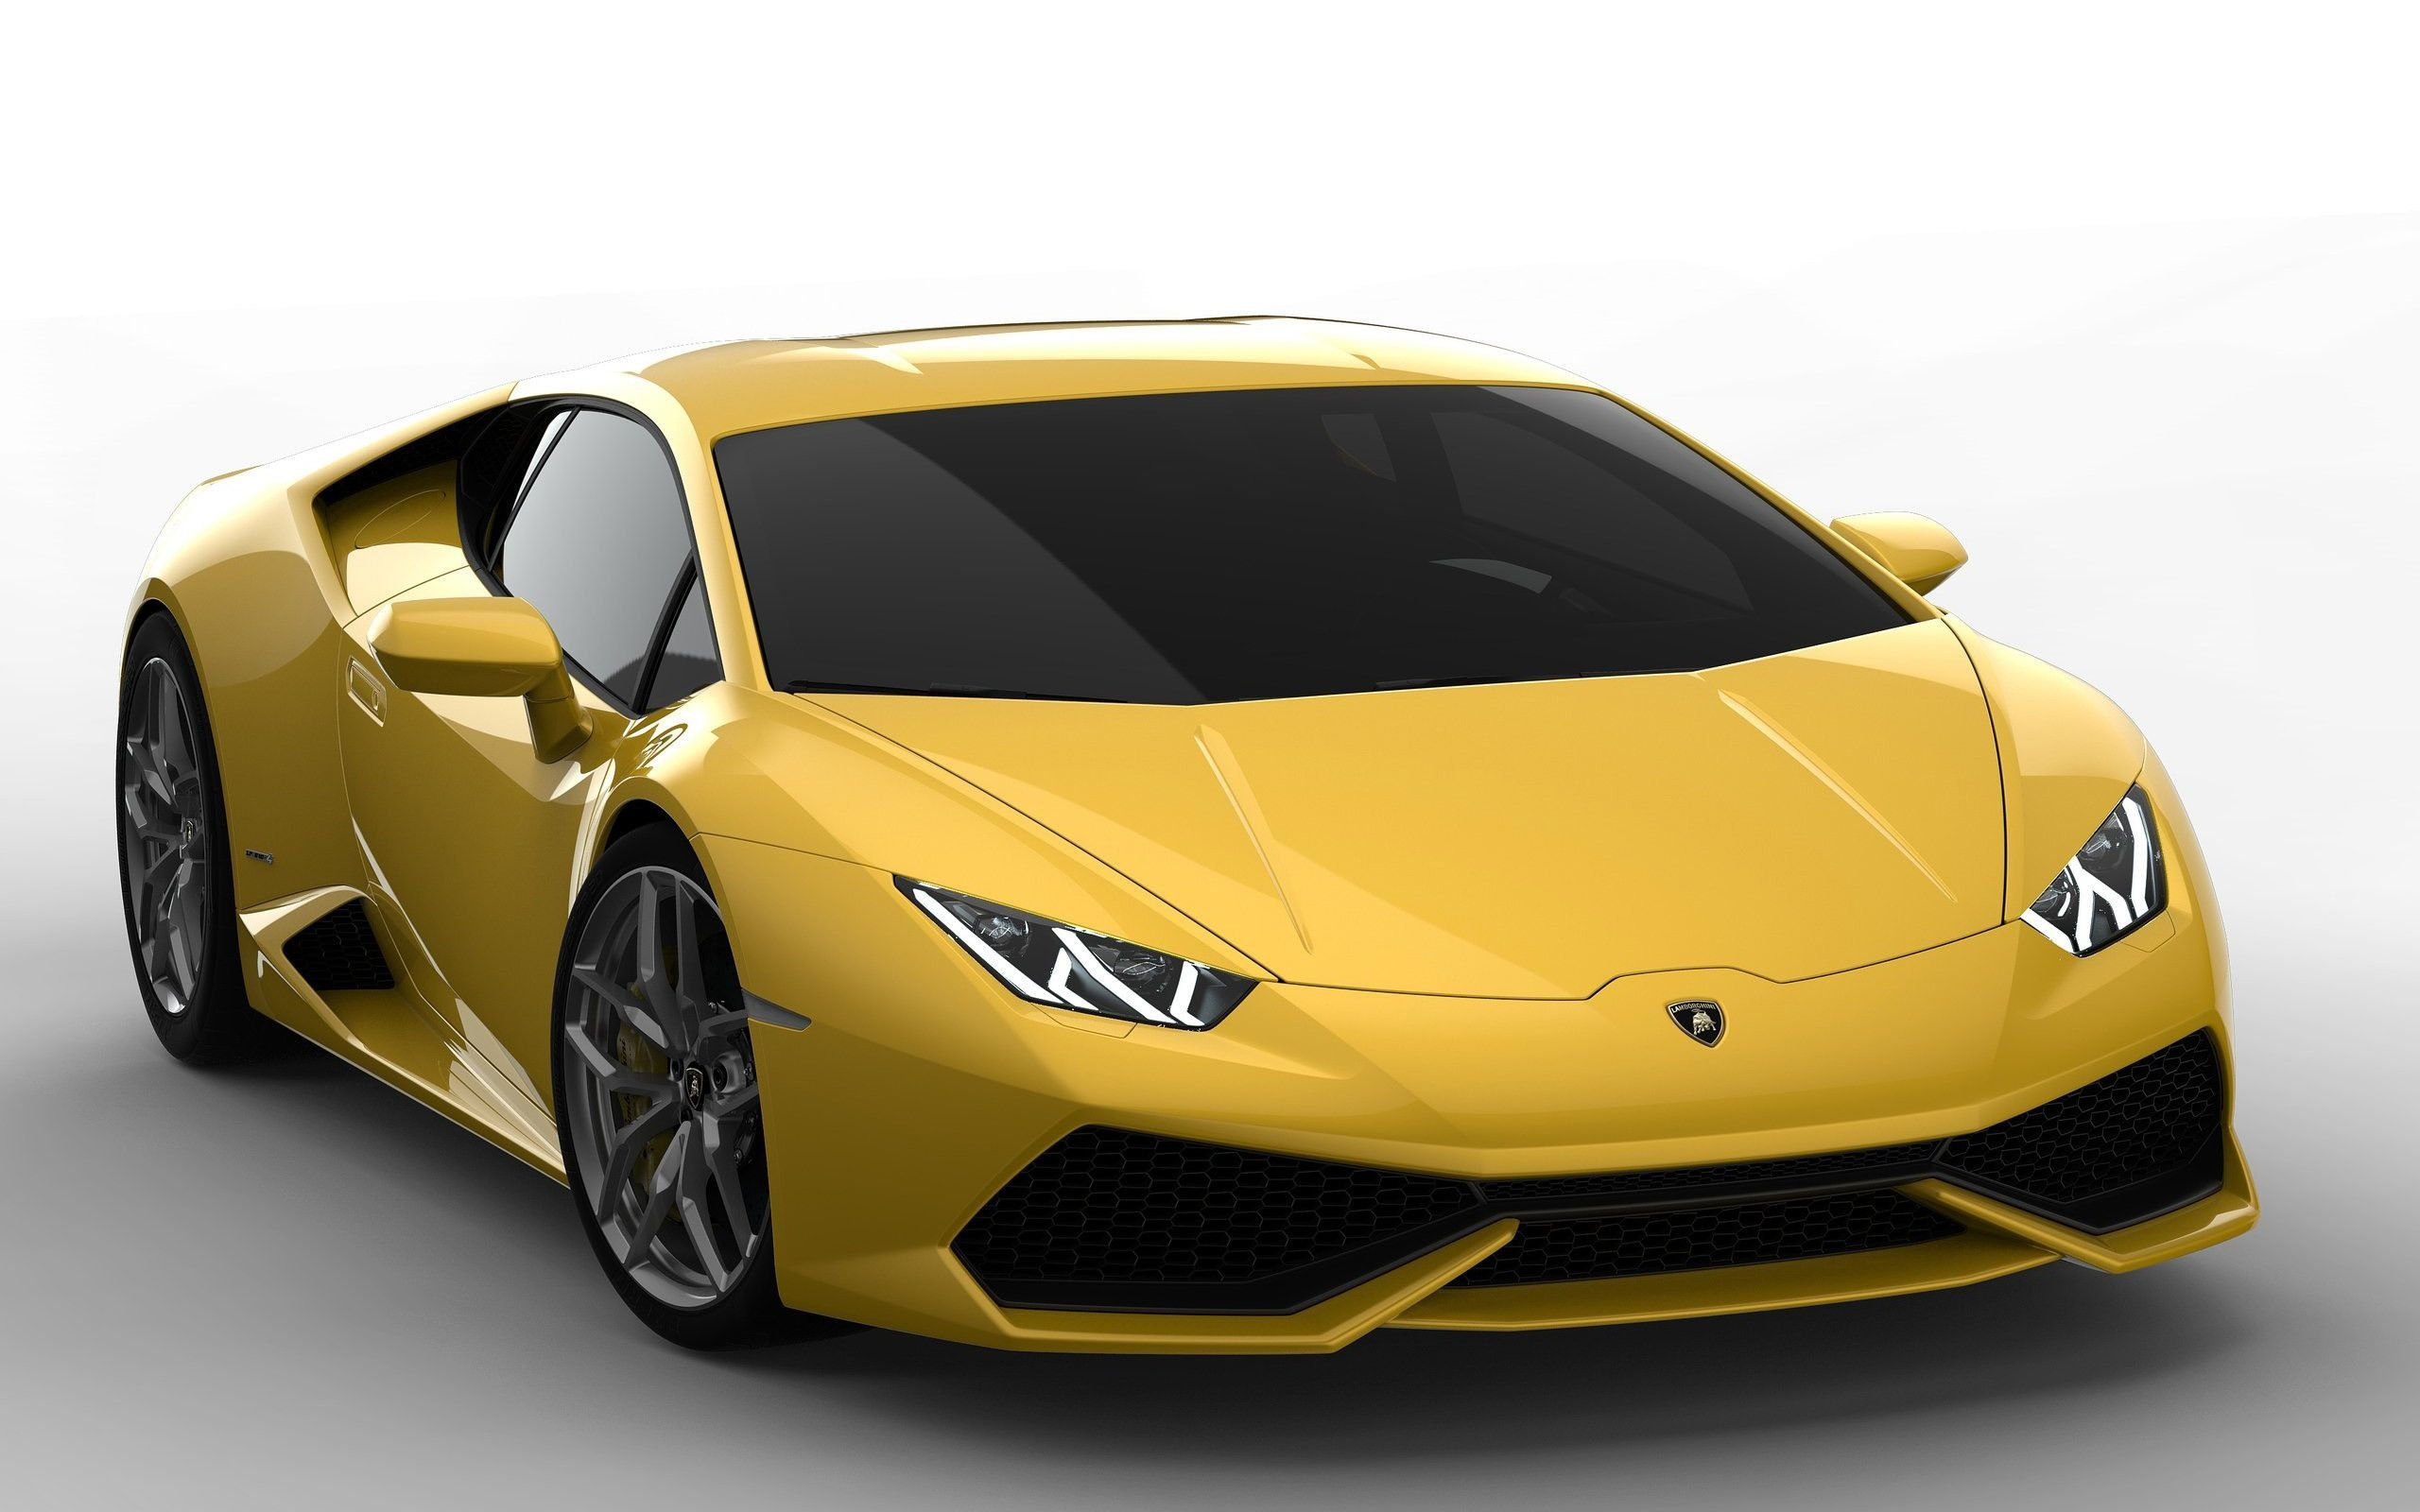 2560x1600 in addition high definition hd 1080p 1920x1080 fits on 1600x900 1366x768  also Lamborghini Huracan Roadster wallpaper